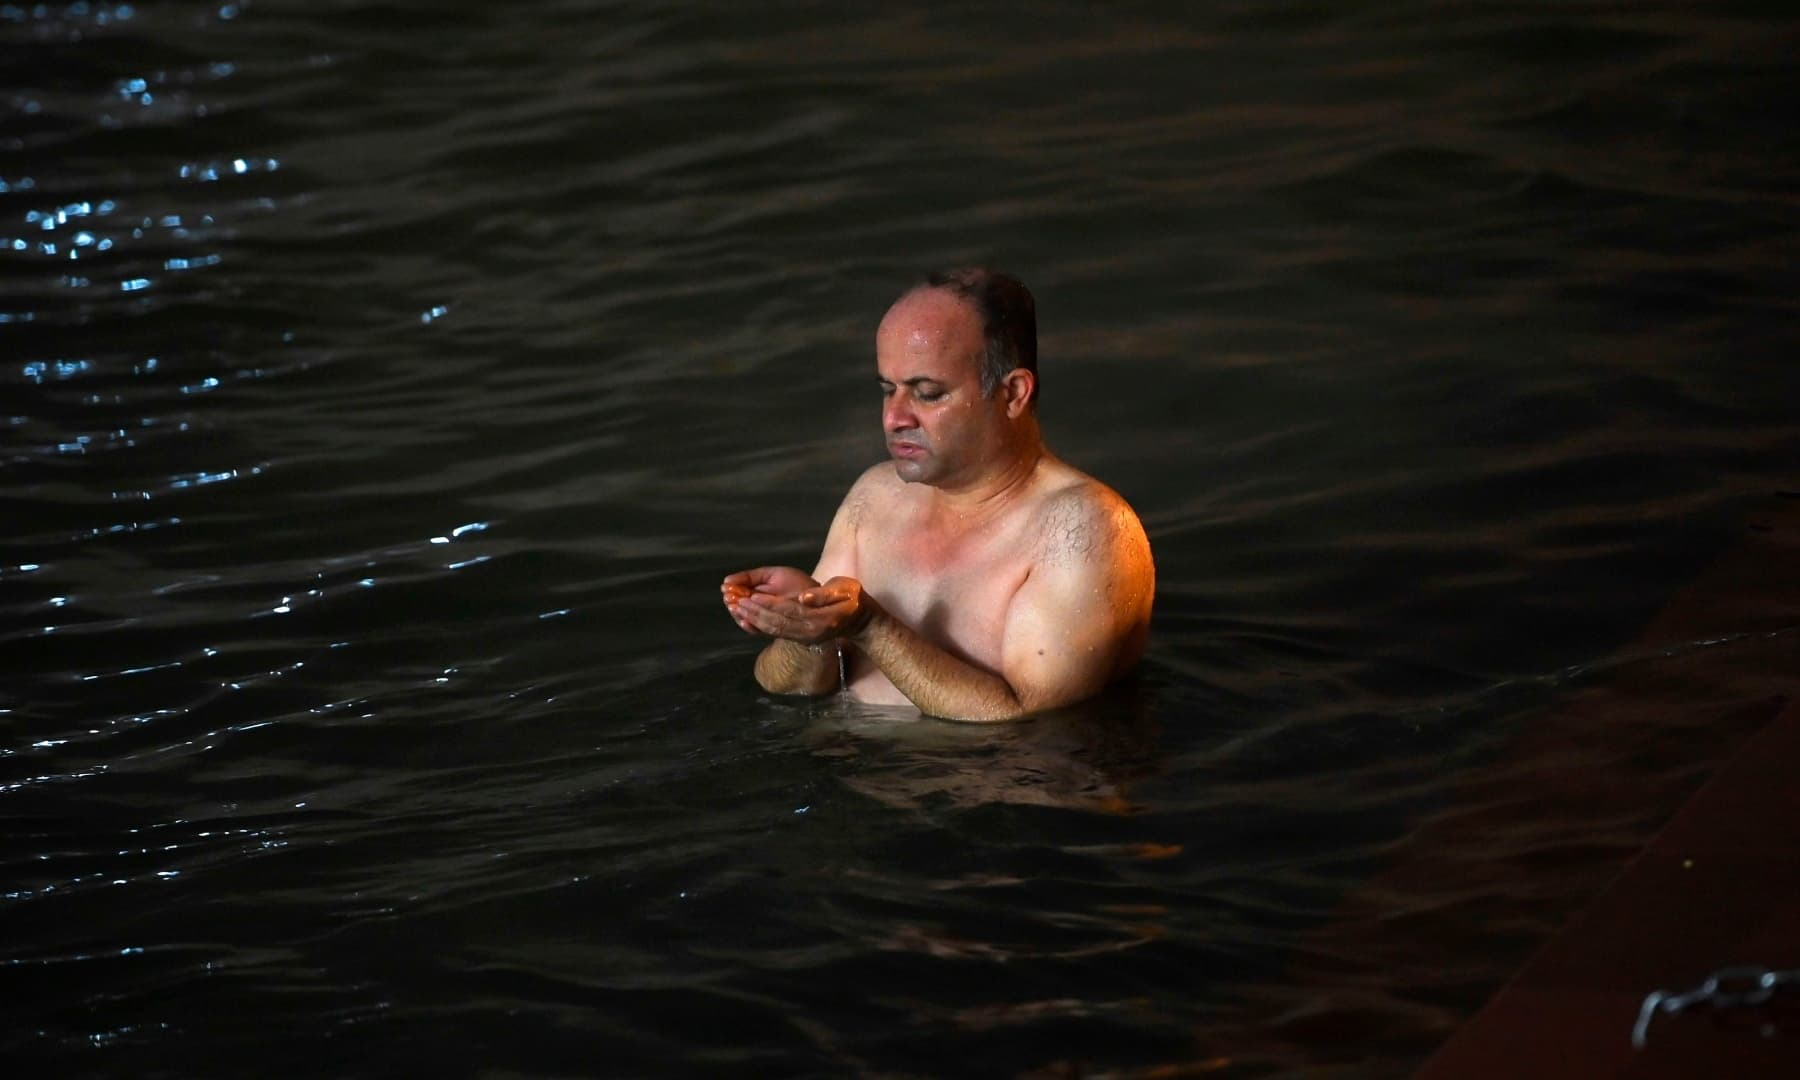 A Hindu devotee offers prayers as he takes a holy dip in the waters of river Ganges during Makar Sankranti, on the first day of the religious Kumbh Mela festival in Haridwar on January 14. — AFP